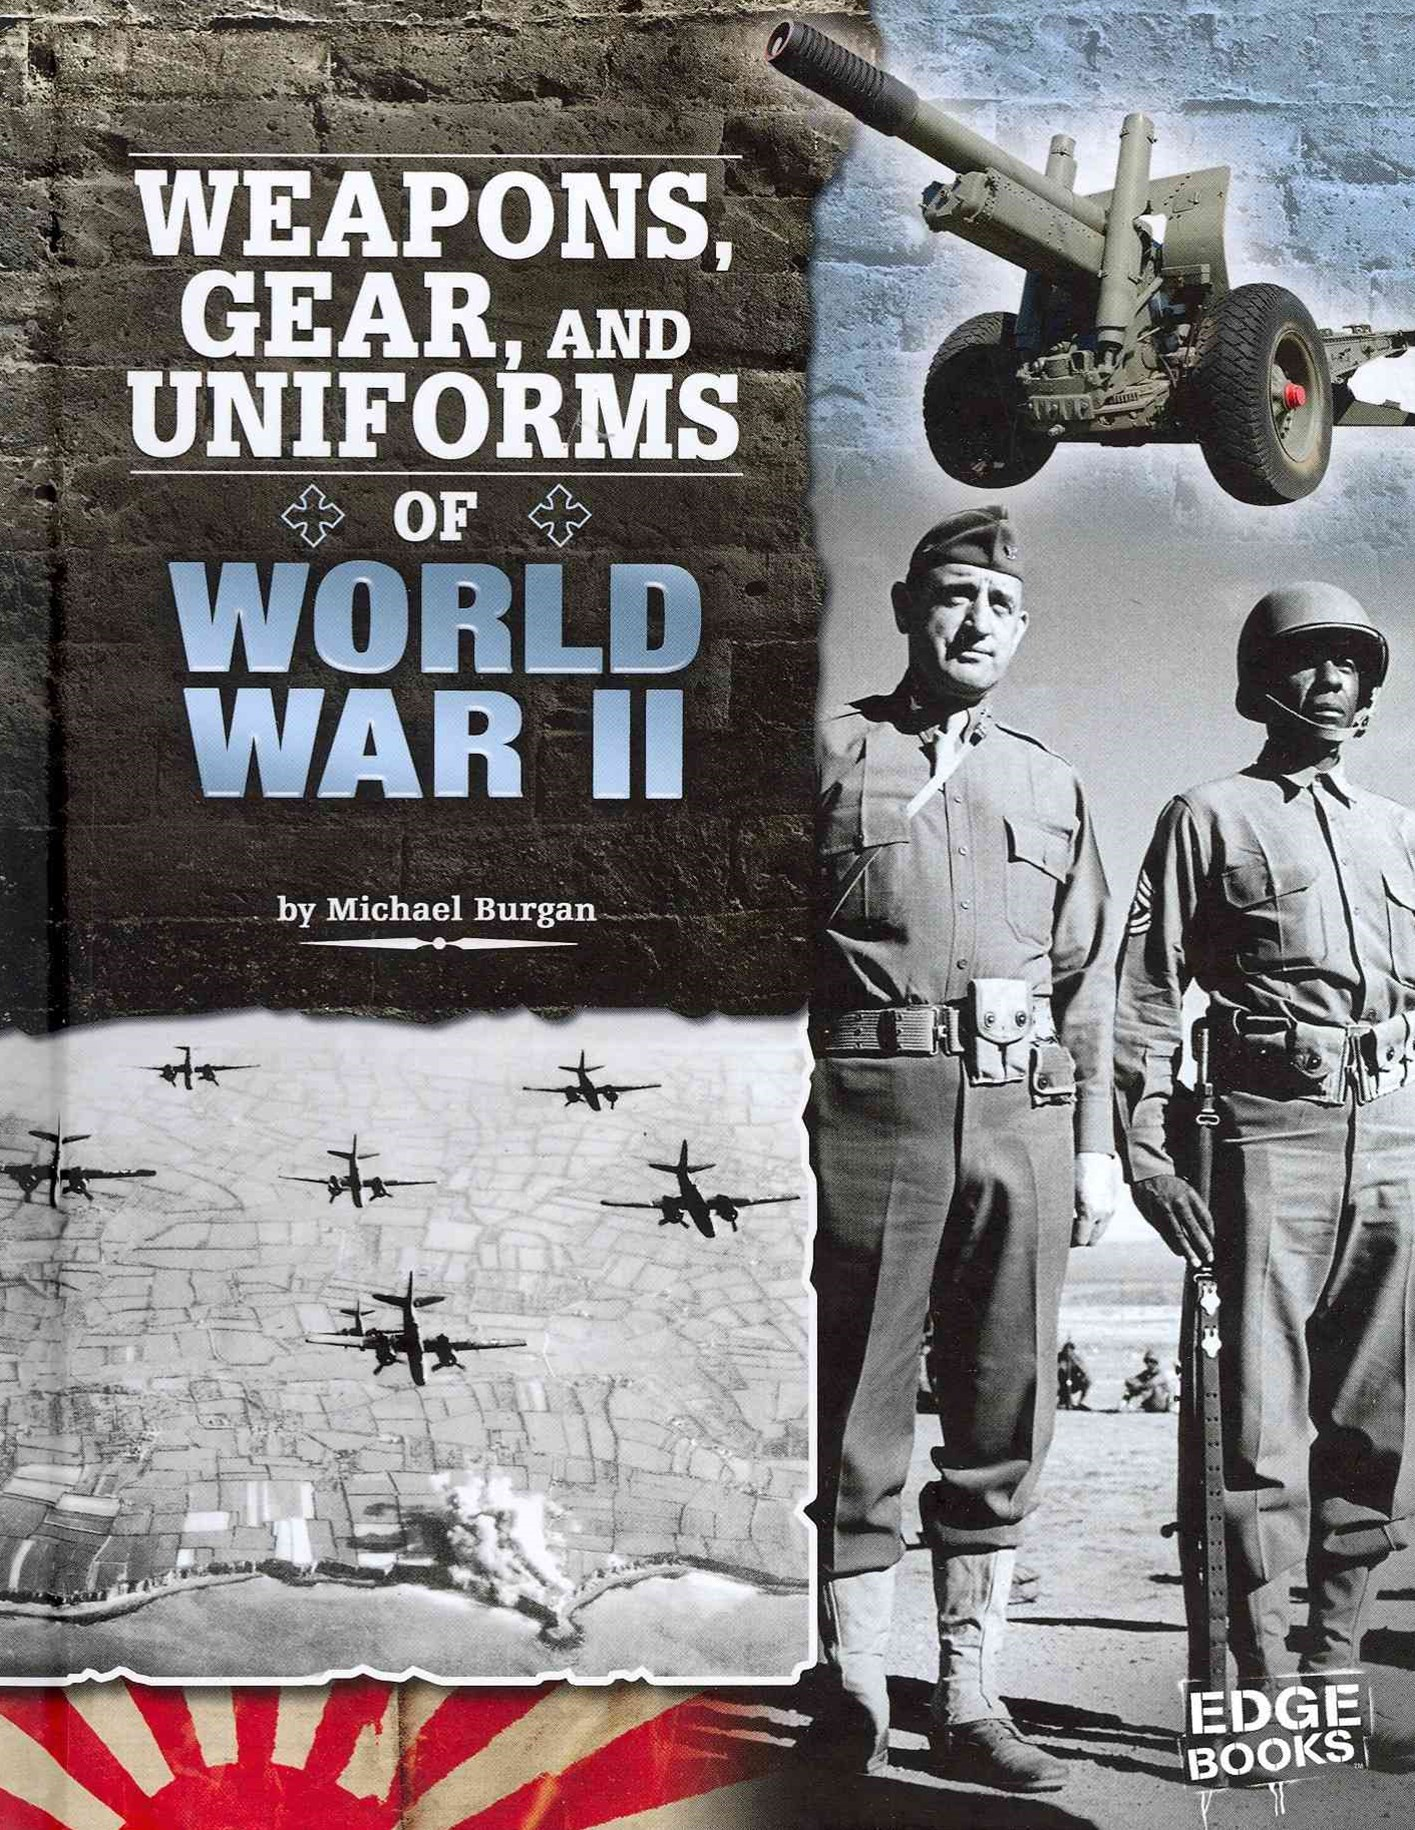 Weapons, Gear, and Uniforms of World War II